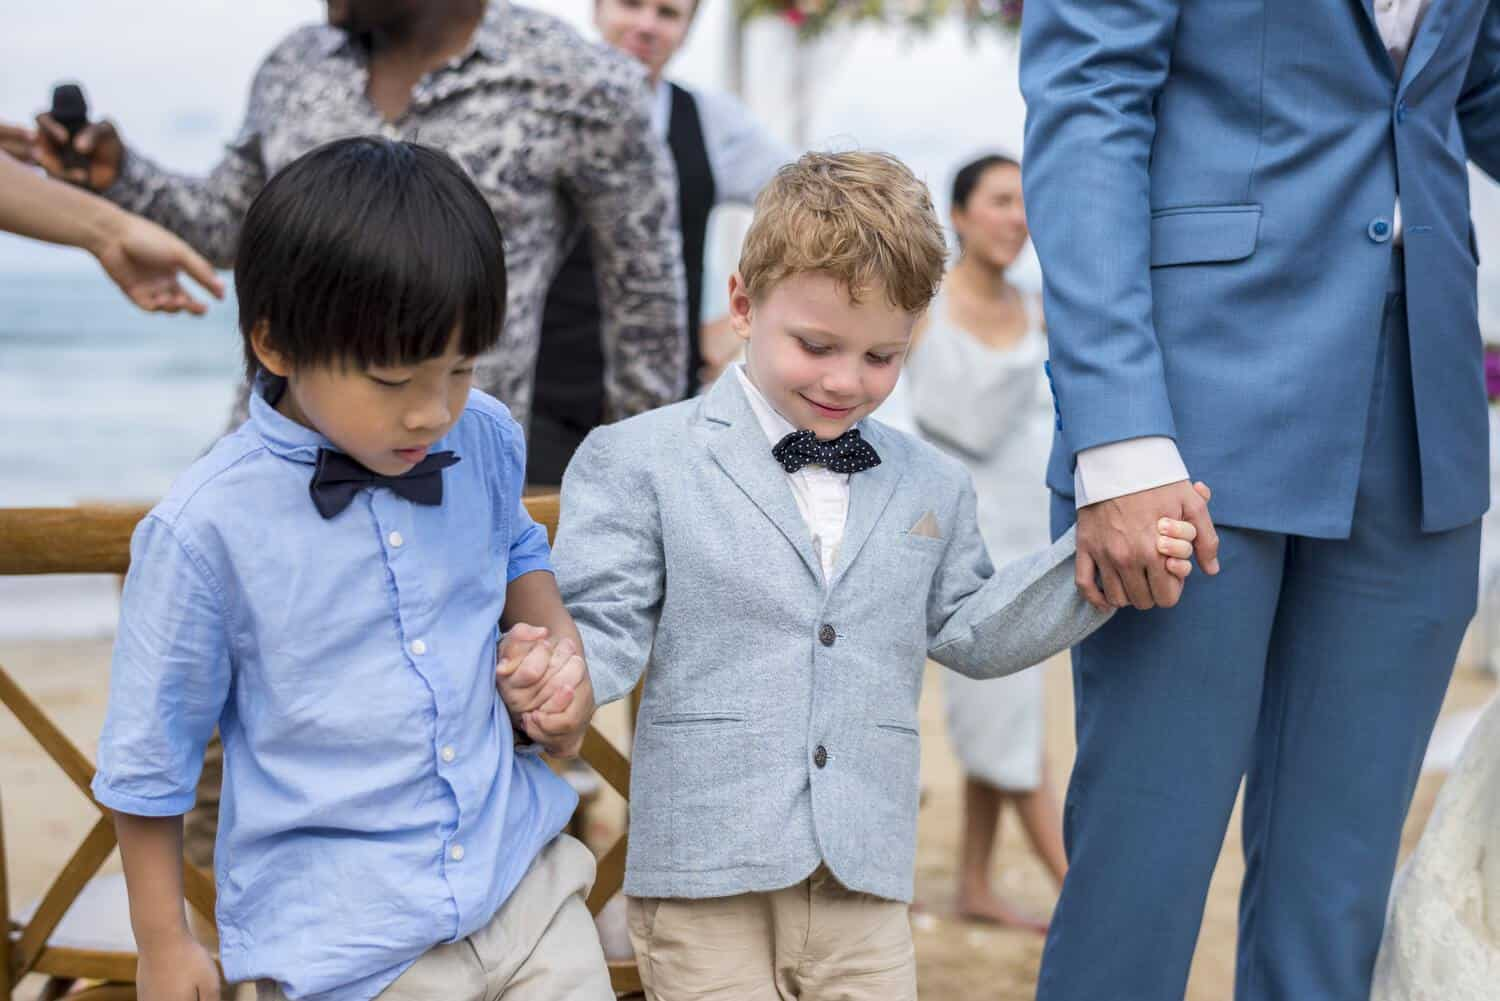 Two young boys at wedding ceremony